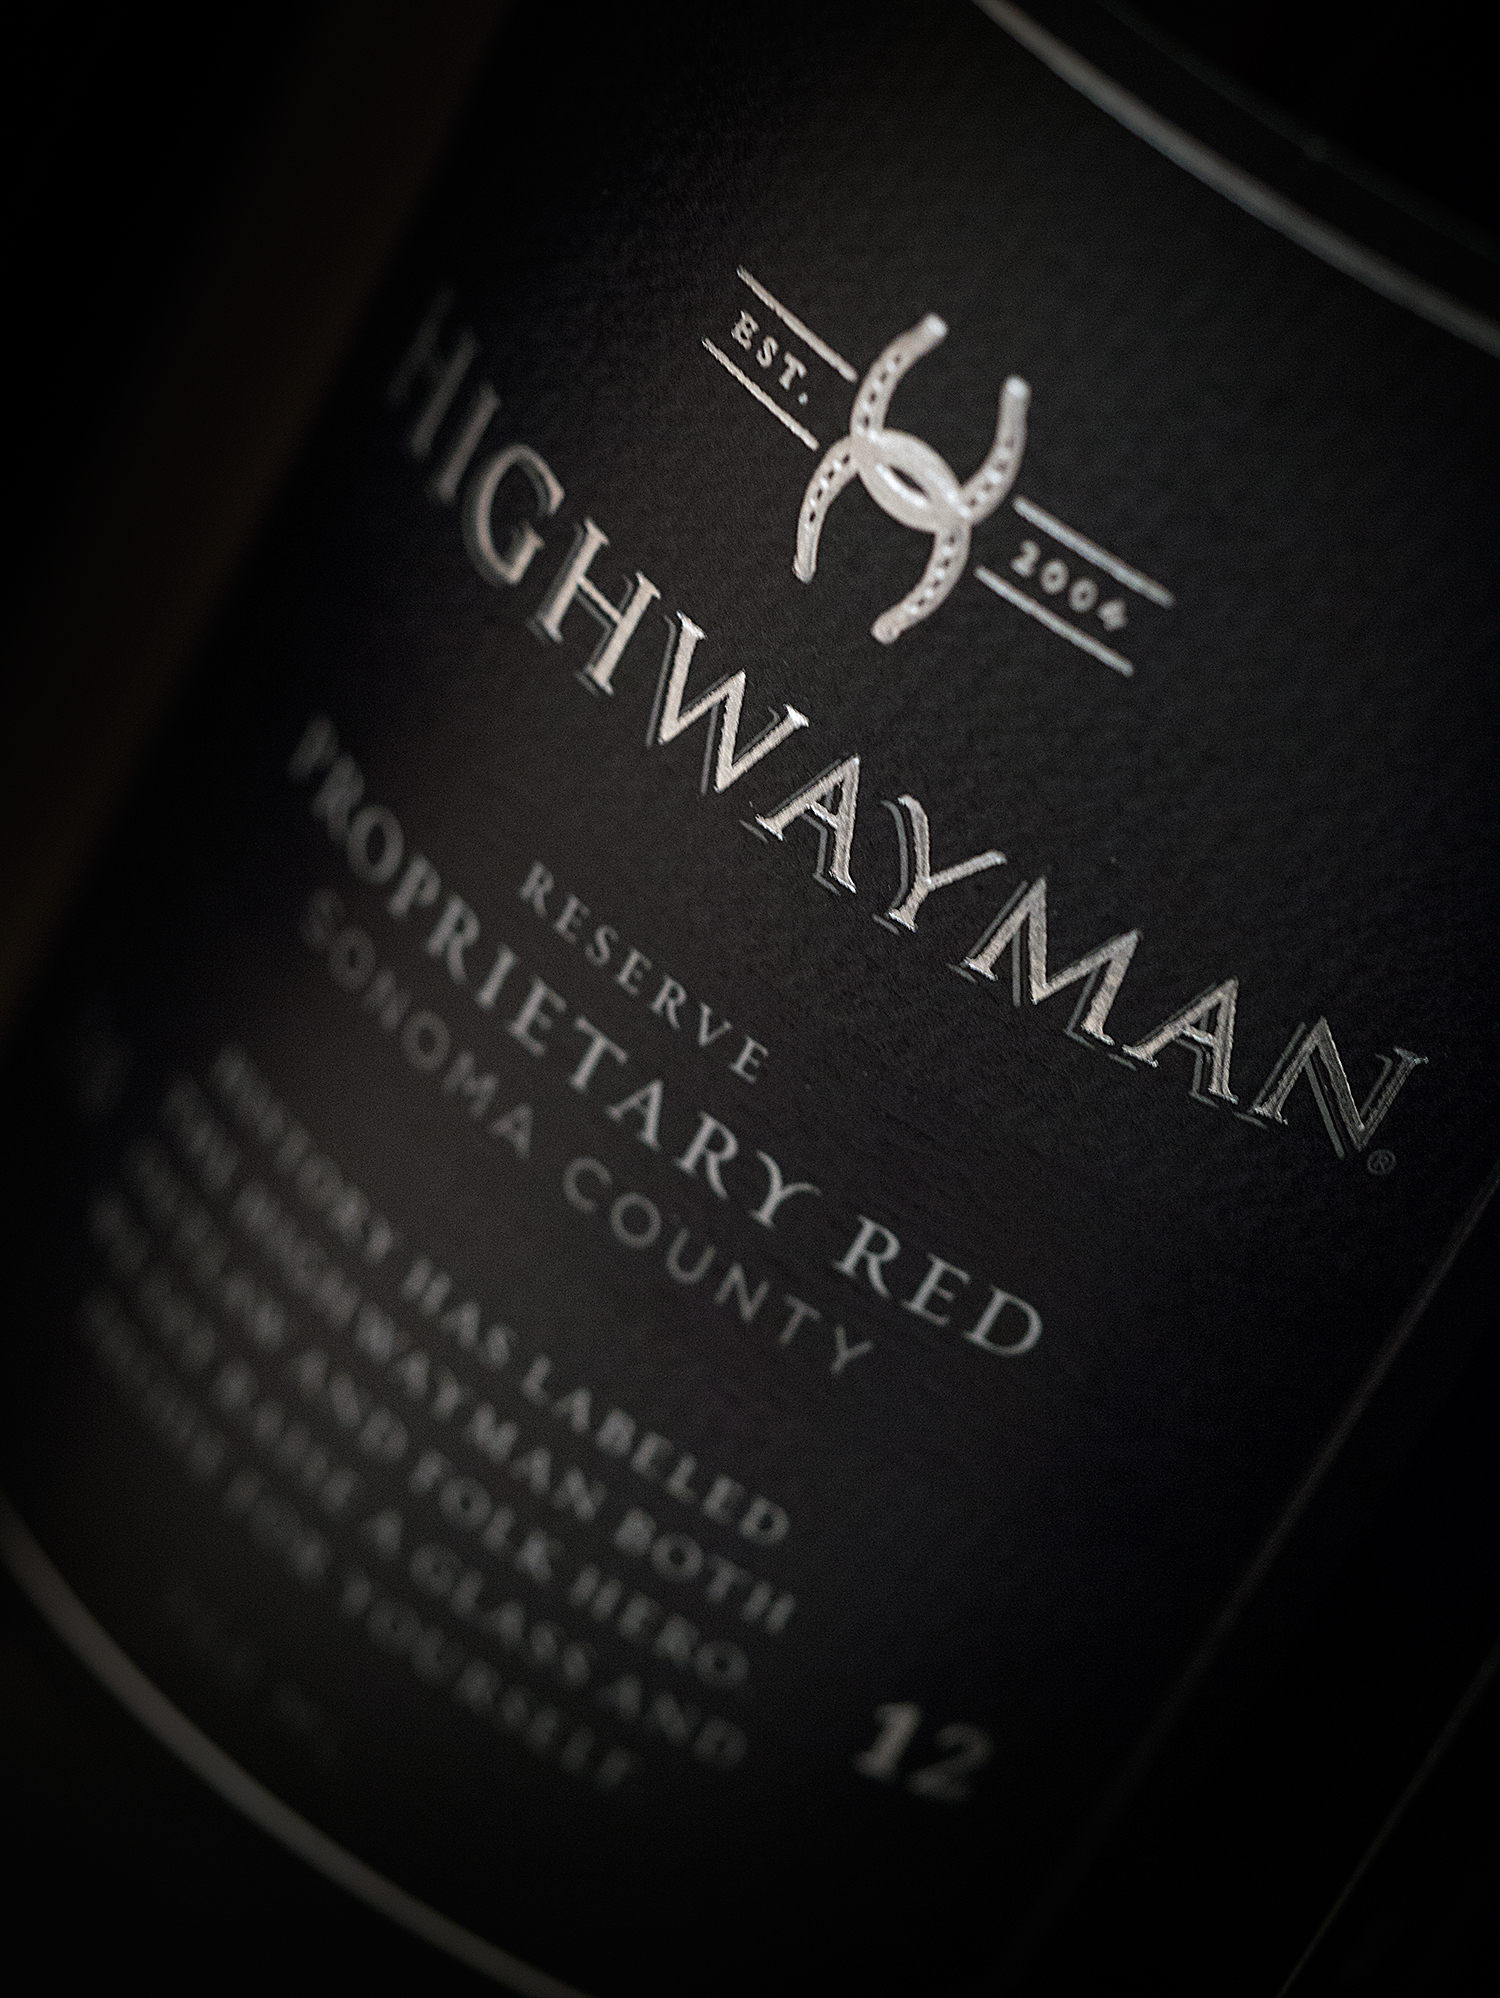 Highwayman Wine Label Design Closeup